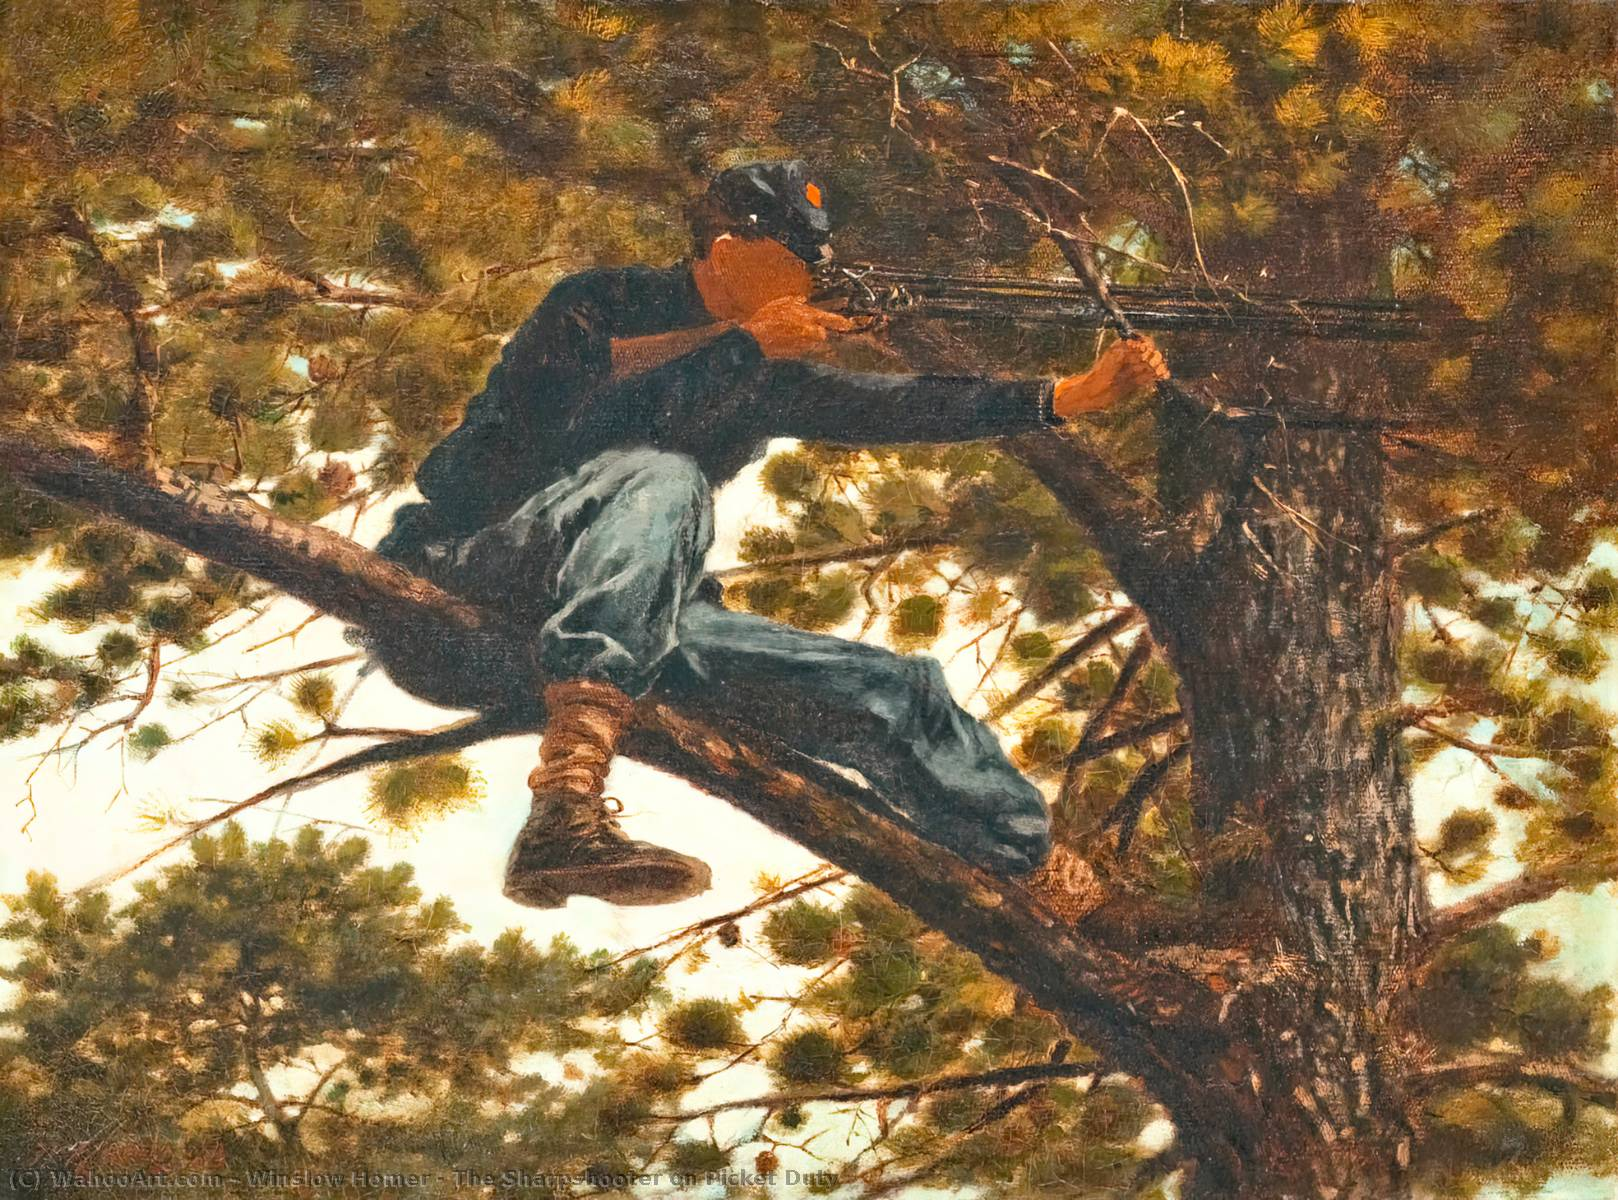 Le Sharpshooter sur Picket Duty, 1863 de Winslow Homer (1836-1910, United States) | Reproductions D'œuvres D'art Winslow Homer | WahooArt.com